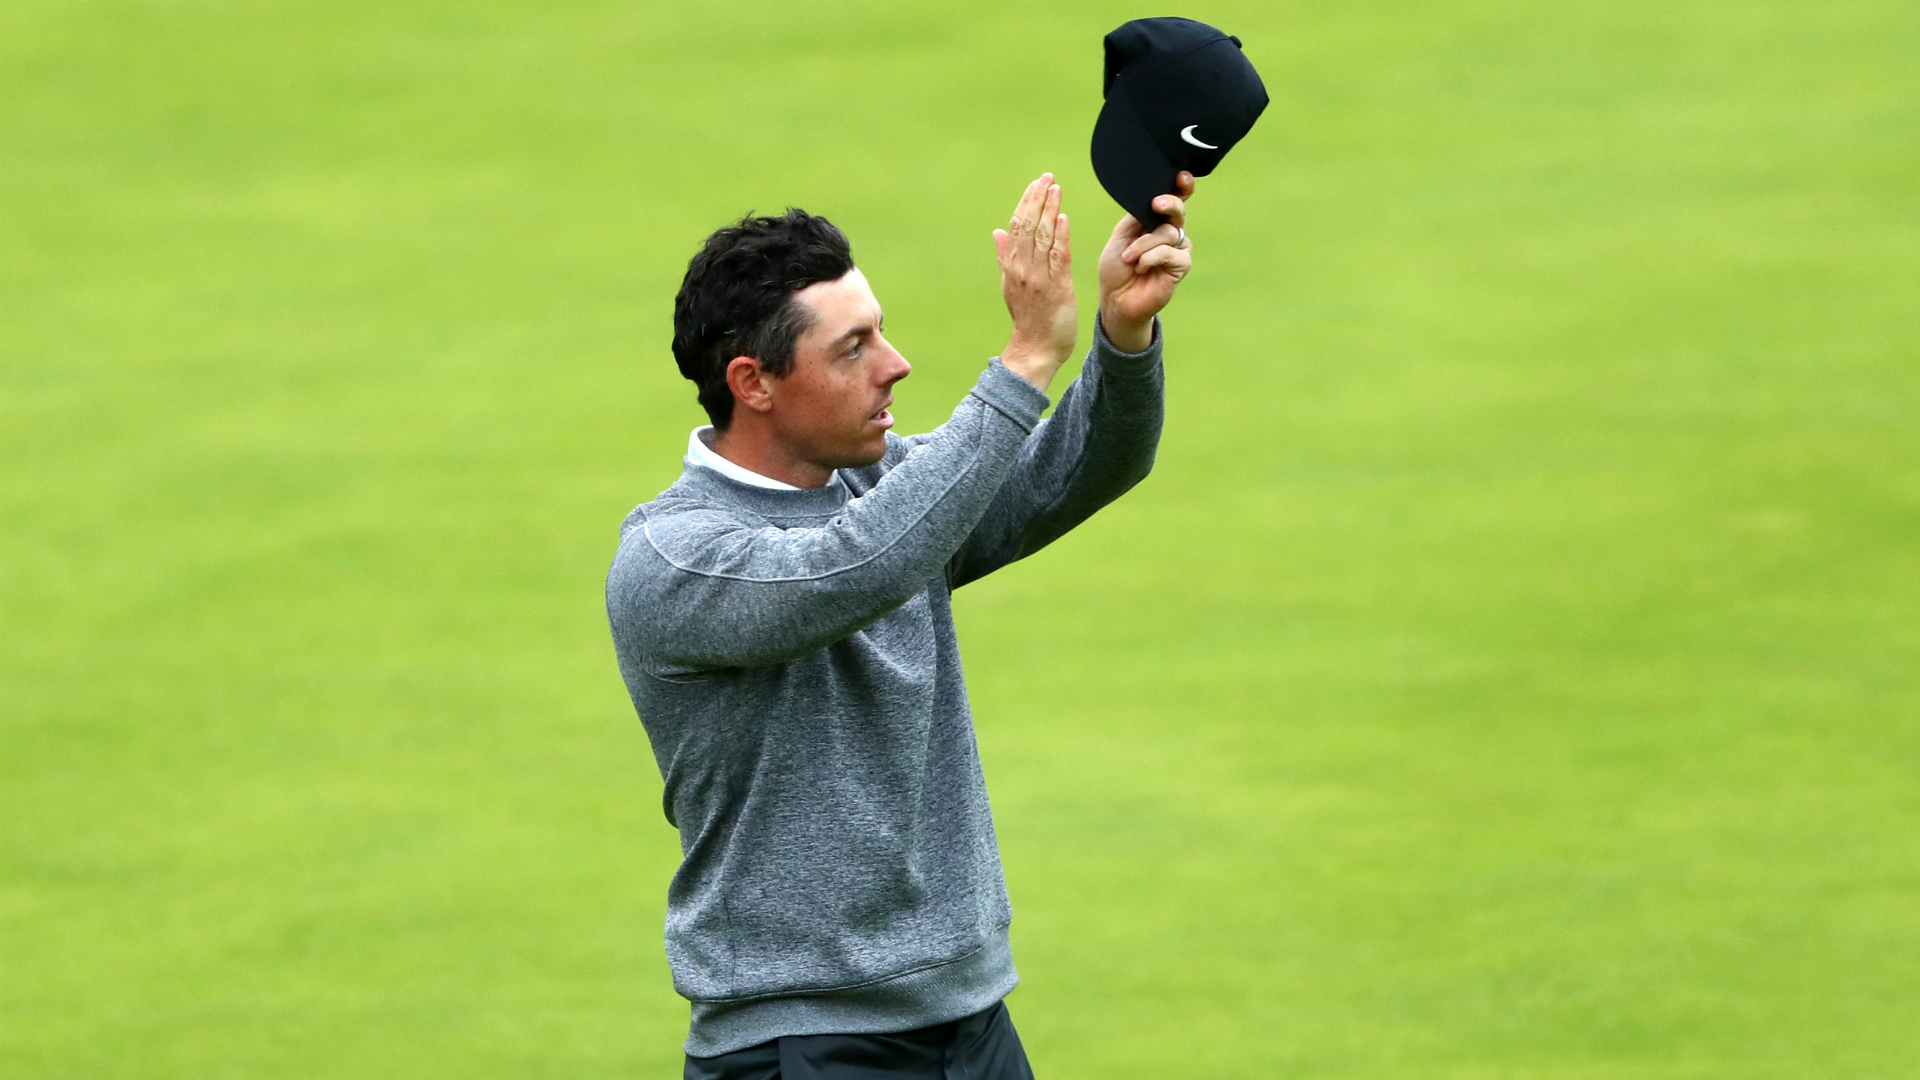 So near, yet so far - A look at Rory McIlroy's stunning effort to make Portrush cut